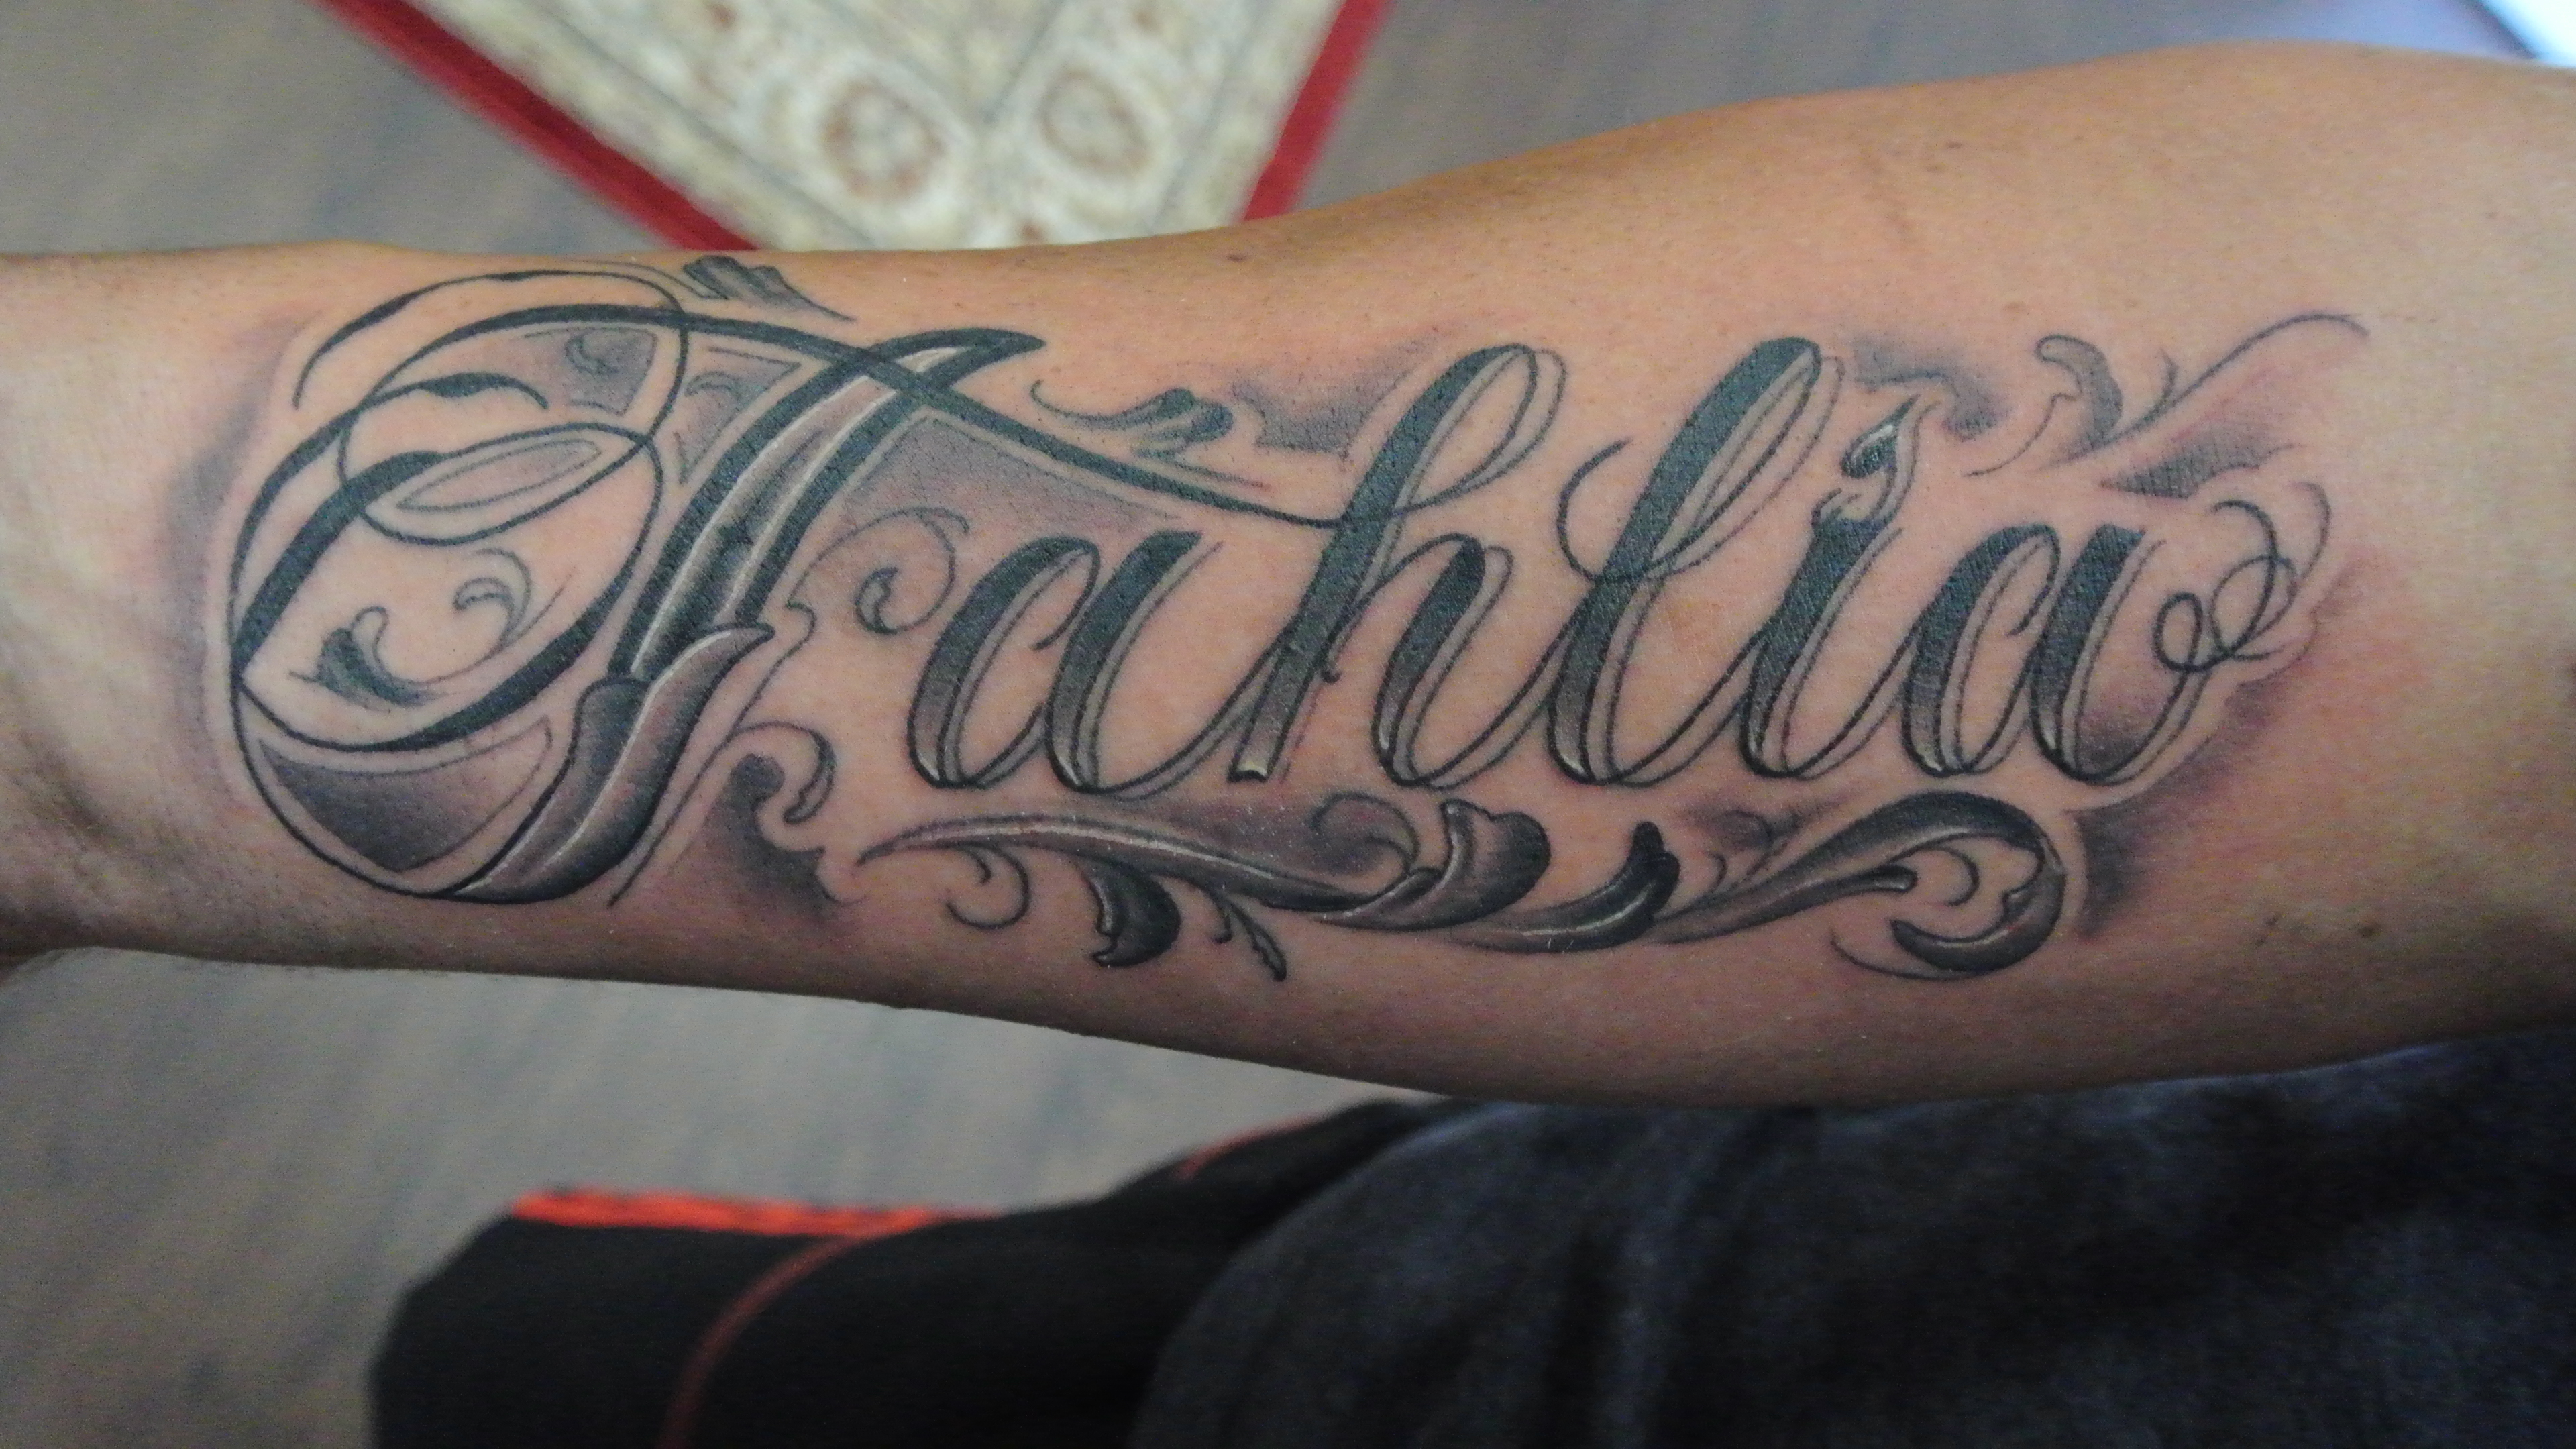 Coolest Tribal Name On Arm Tattoo Design Tattooed Images throughout proportions 3840 X 2160